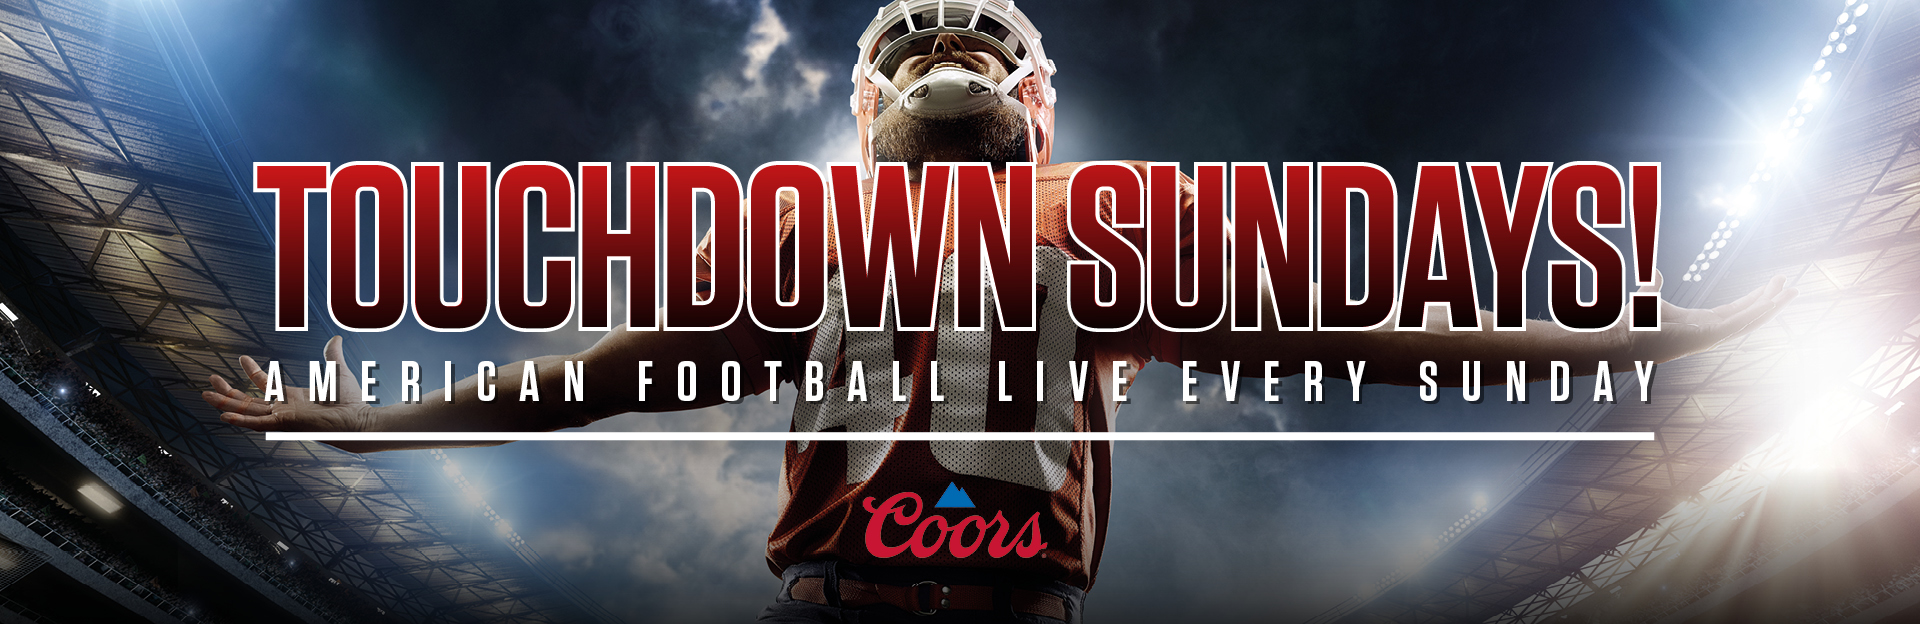 Watch NFL at The Beverley